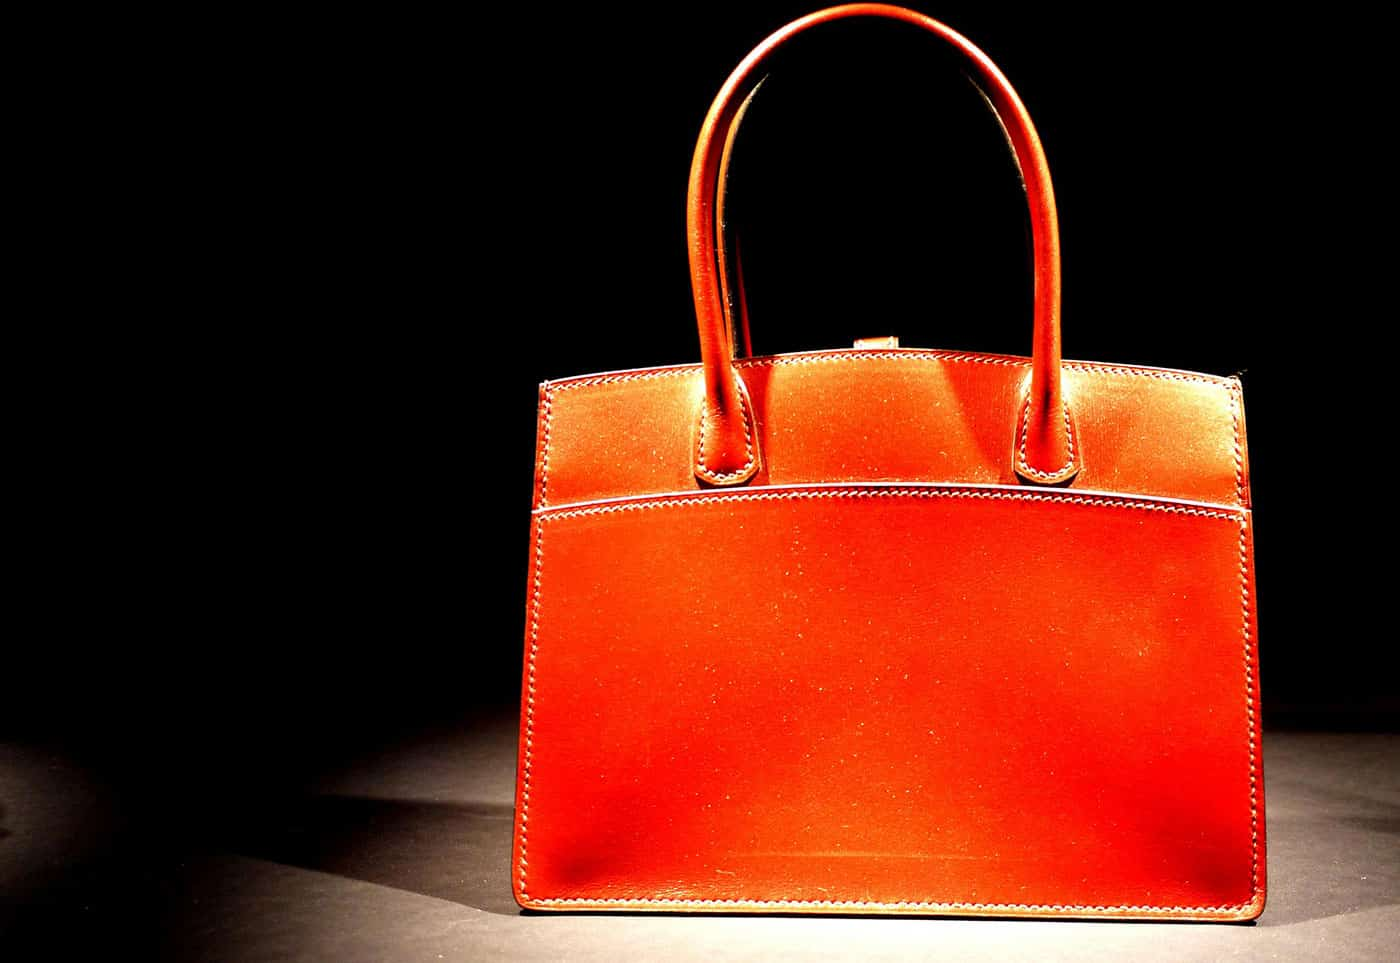 Loans Against Hermes bags